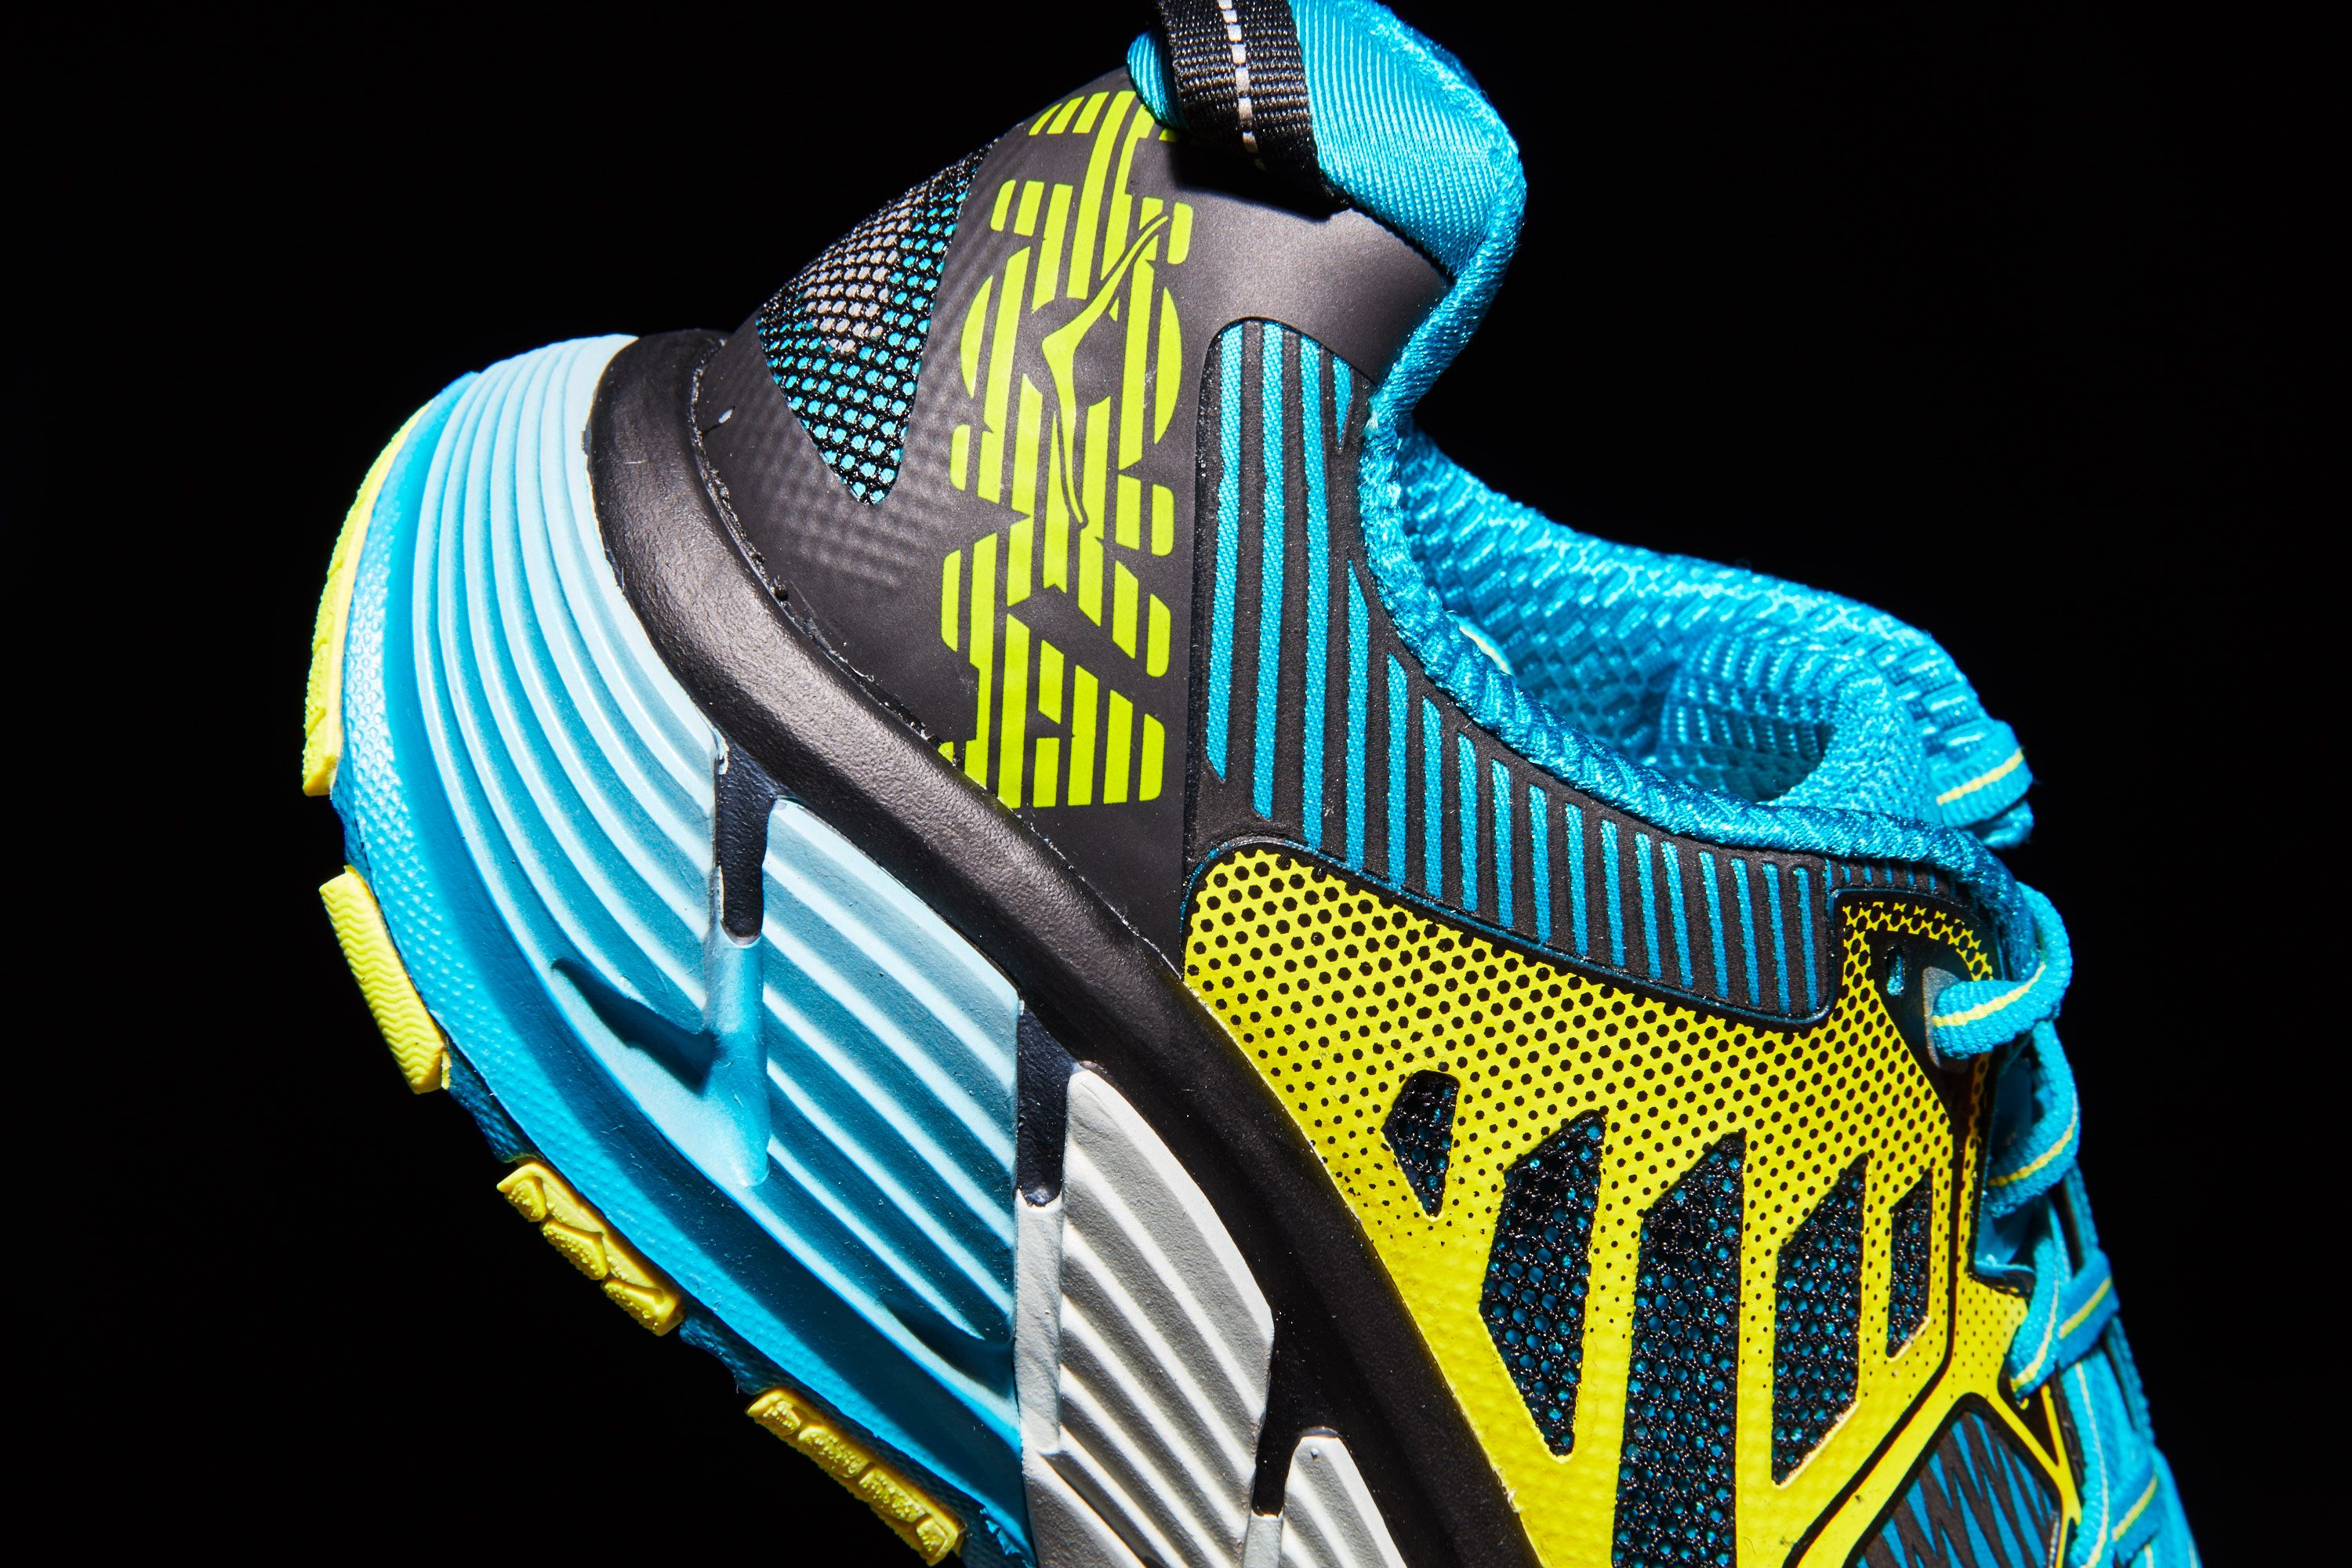 201914 Running One Hoka Shoes Best YbIfv76gy